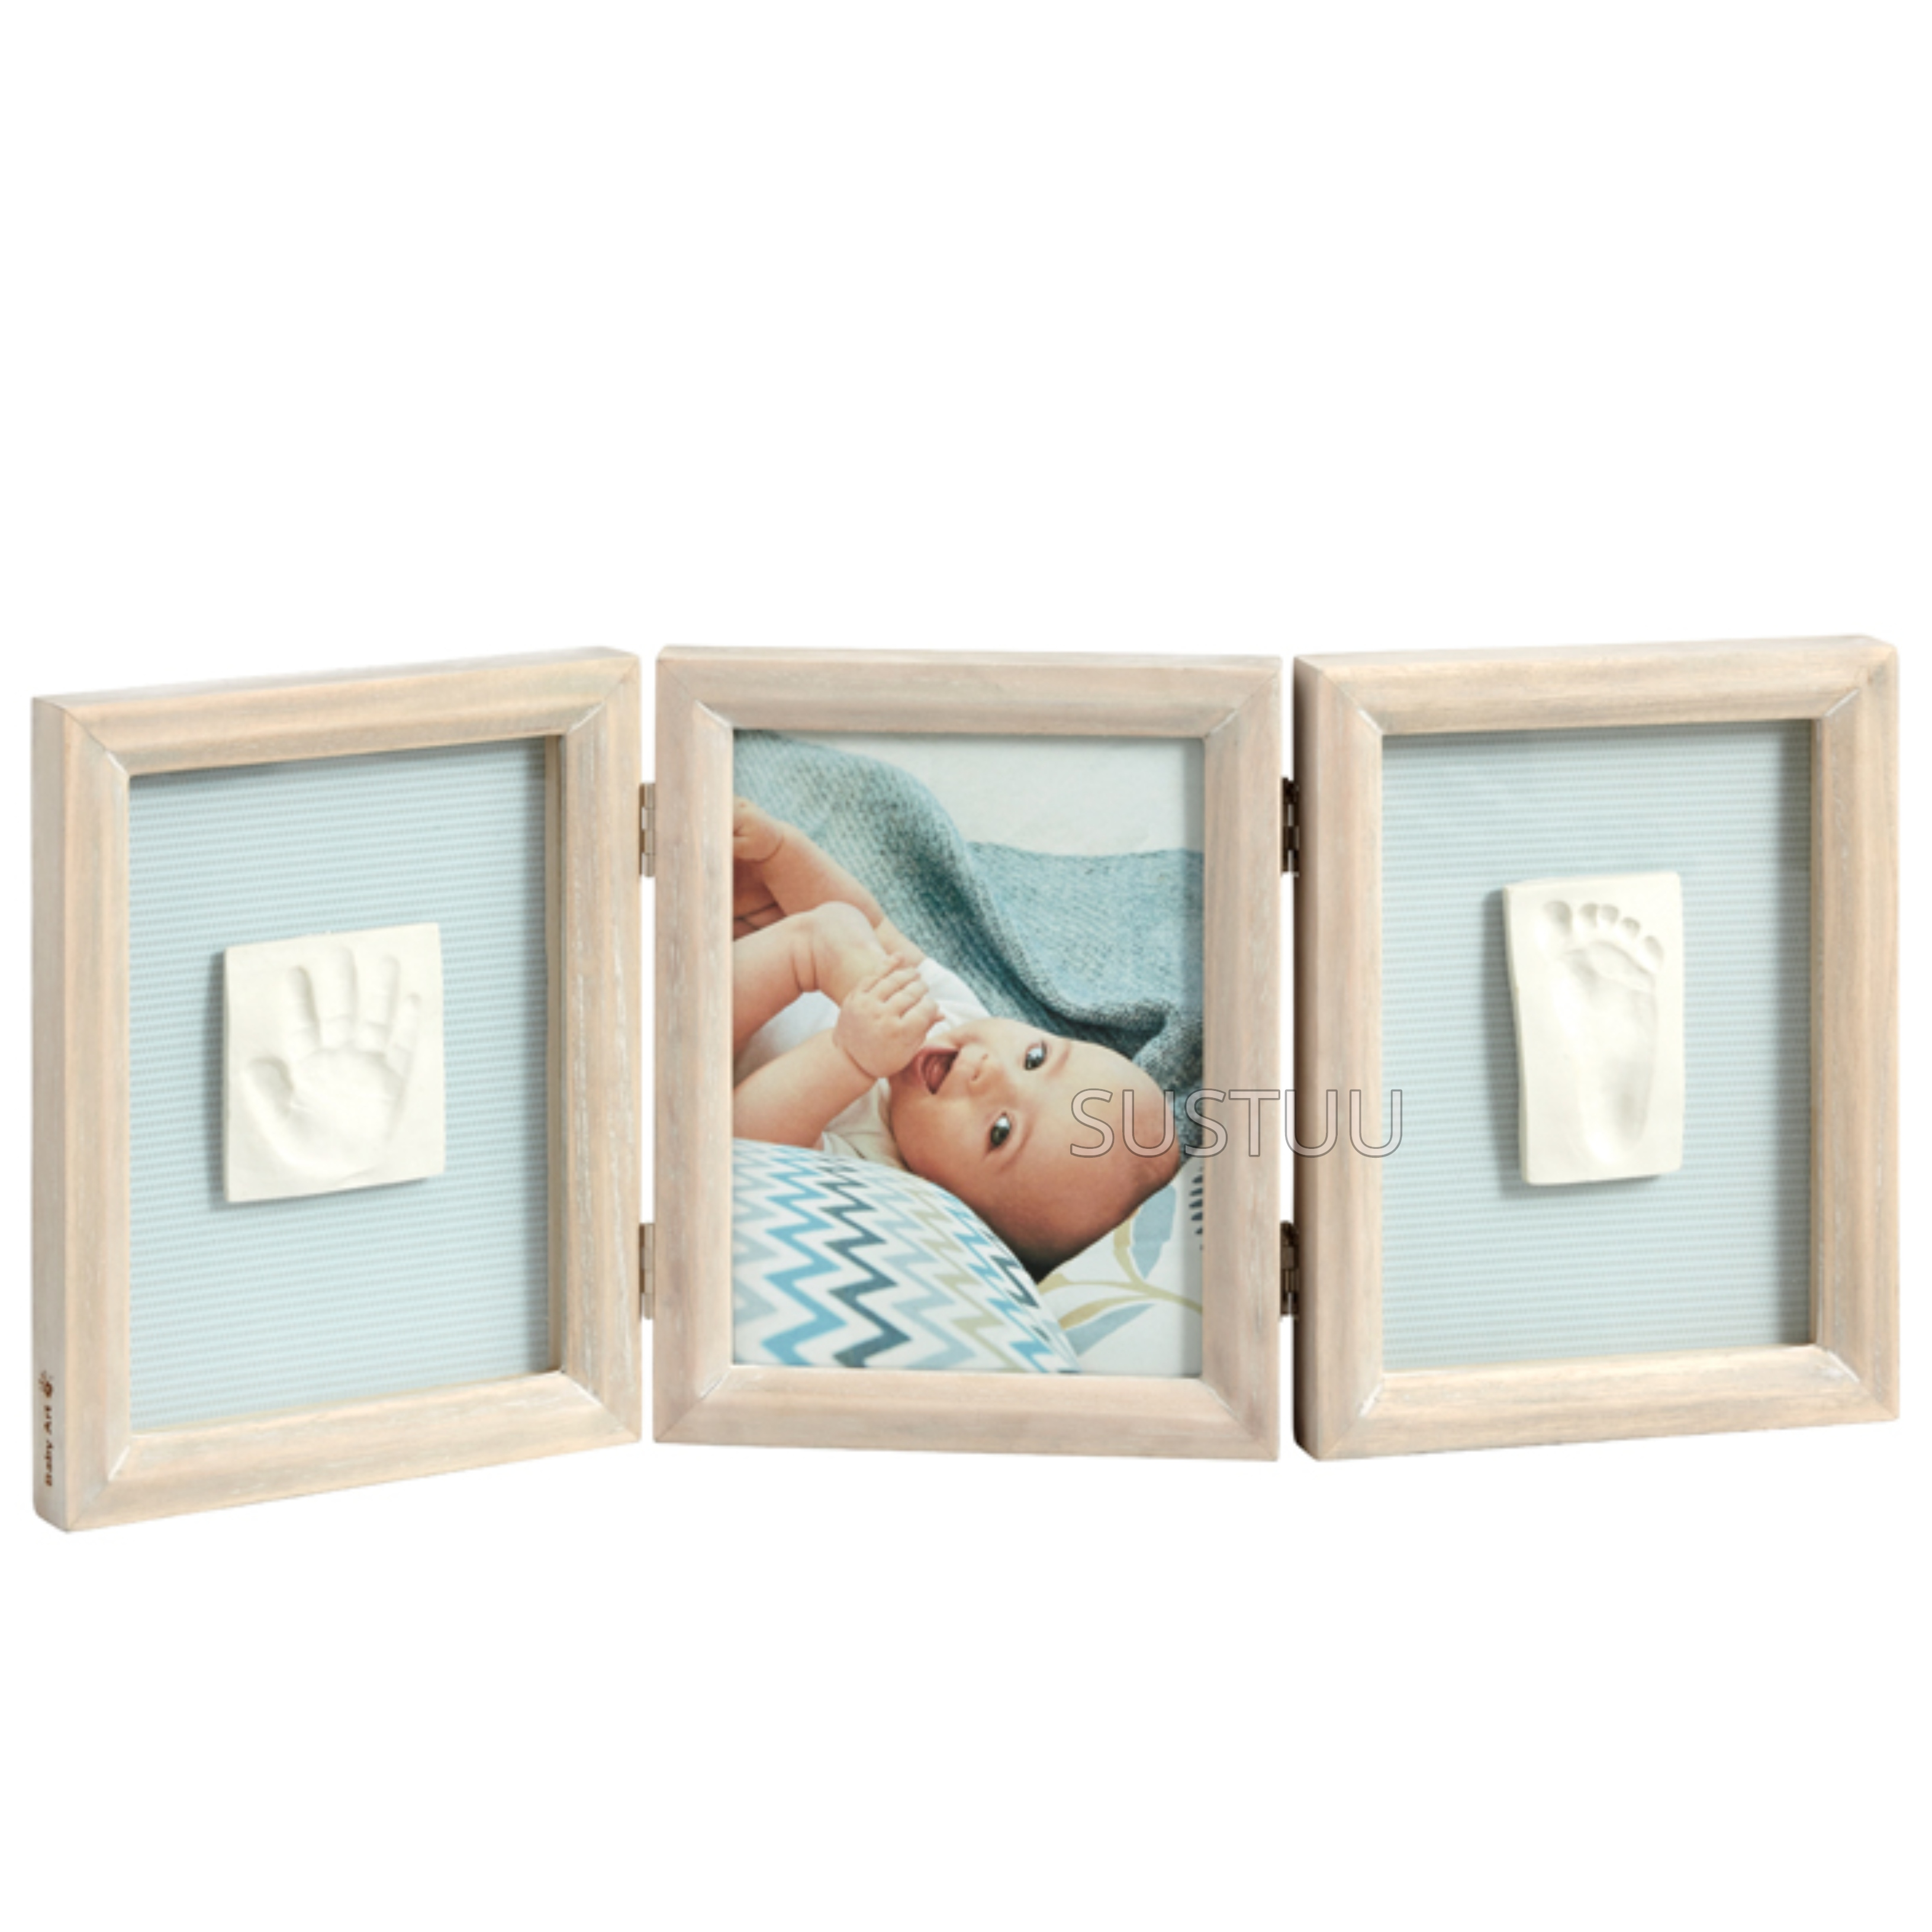 Baby Art My Baby Touch Double Print Frame Stormy | Giftware For Baby Shower+Birthdays